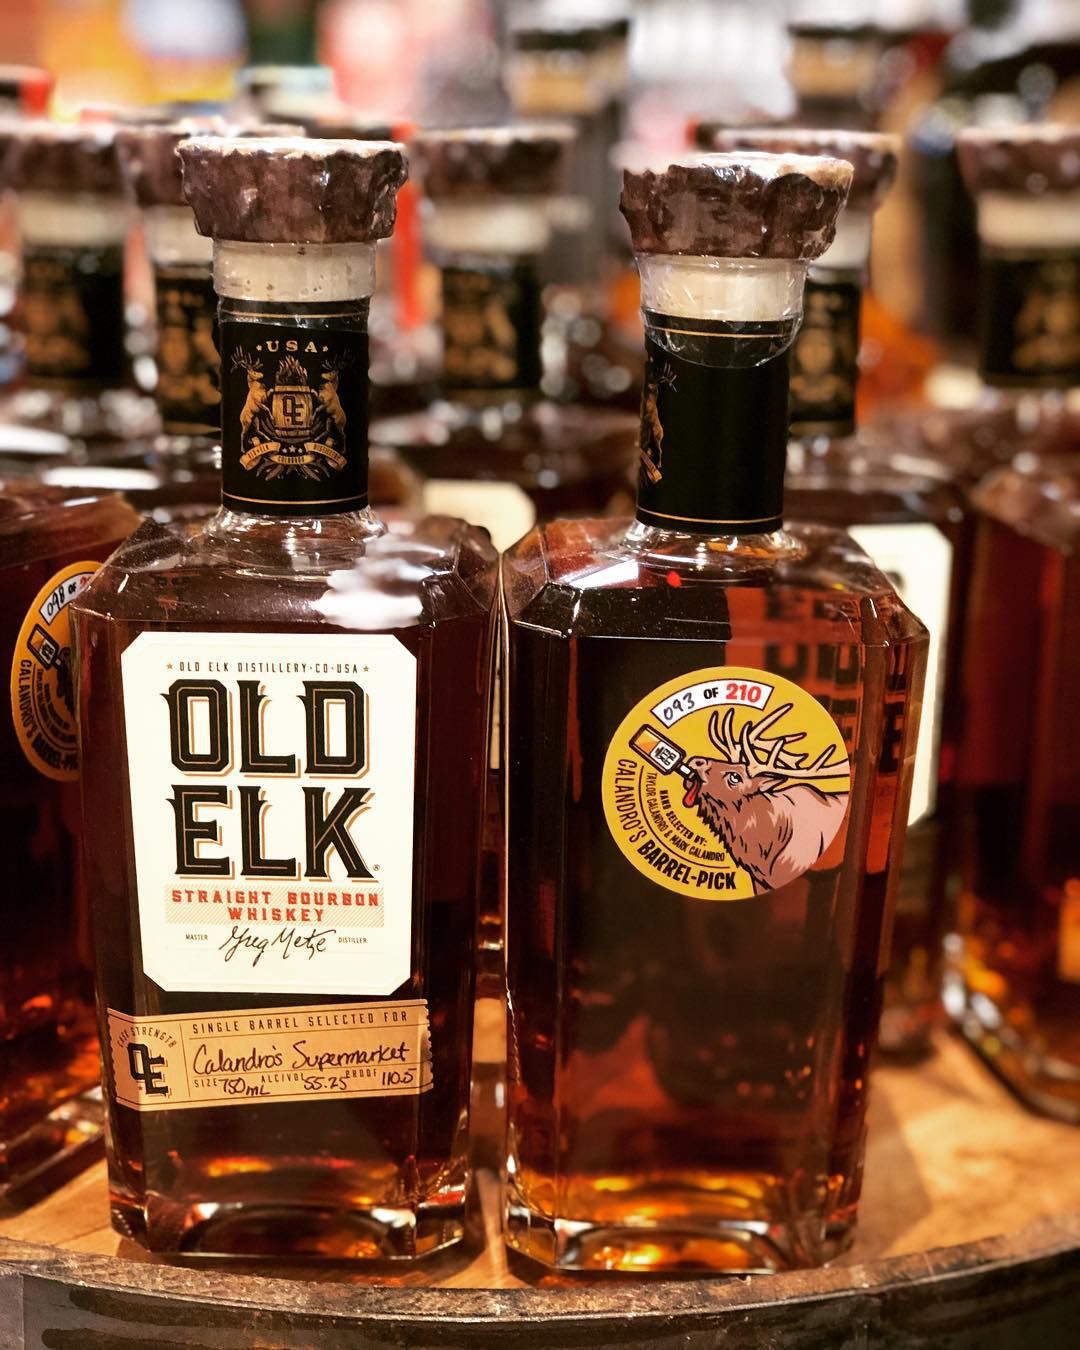 THIS JUST IN! The first barrel pick of @oldelkbourbon in the state of Louisiana at…